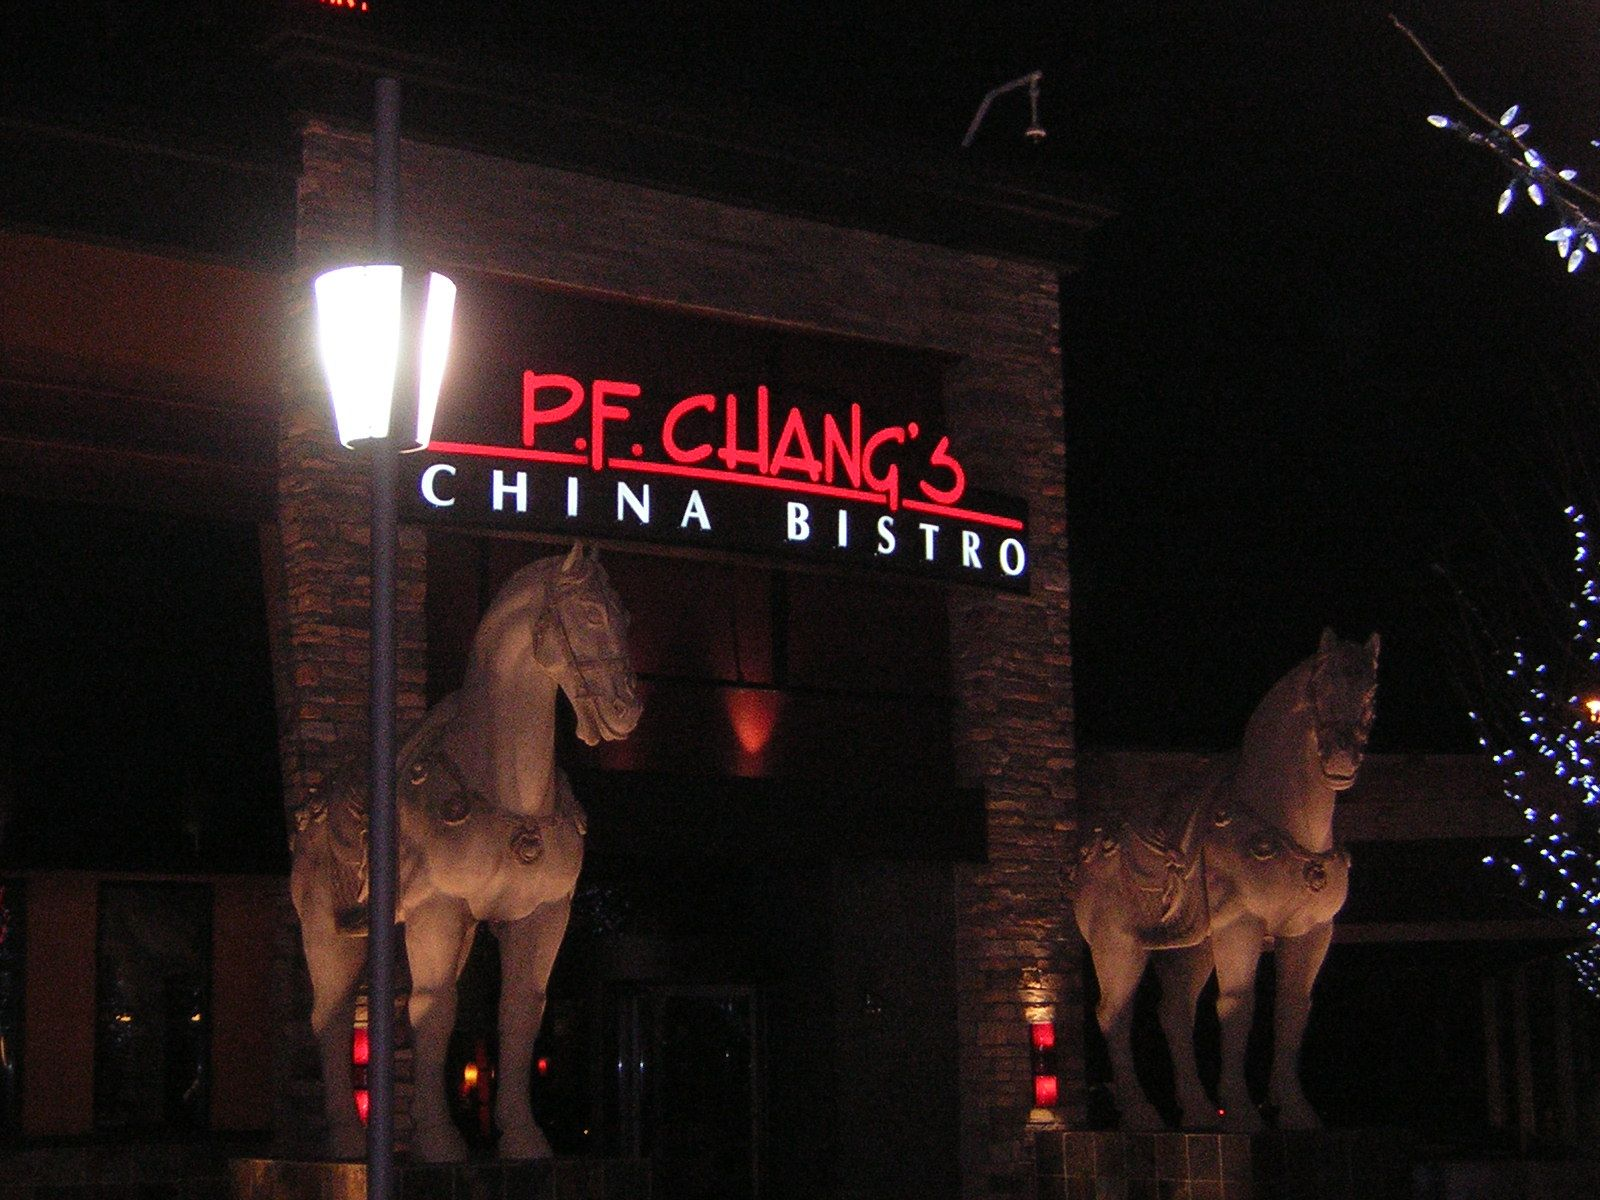 PF Changs.  I love chinese food.  My first experience with PF's was in Honolulu and every major American city afterward.  PF combines strong consistent branding, with a polished experience to a favourite, paying attention to every little detail.  At a stag I was at last spring, one of our buddies had an allergy to peanuts.  PF's has special branded plates designed specifically to identify special orders without compromising presentation.  Perfect.